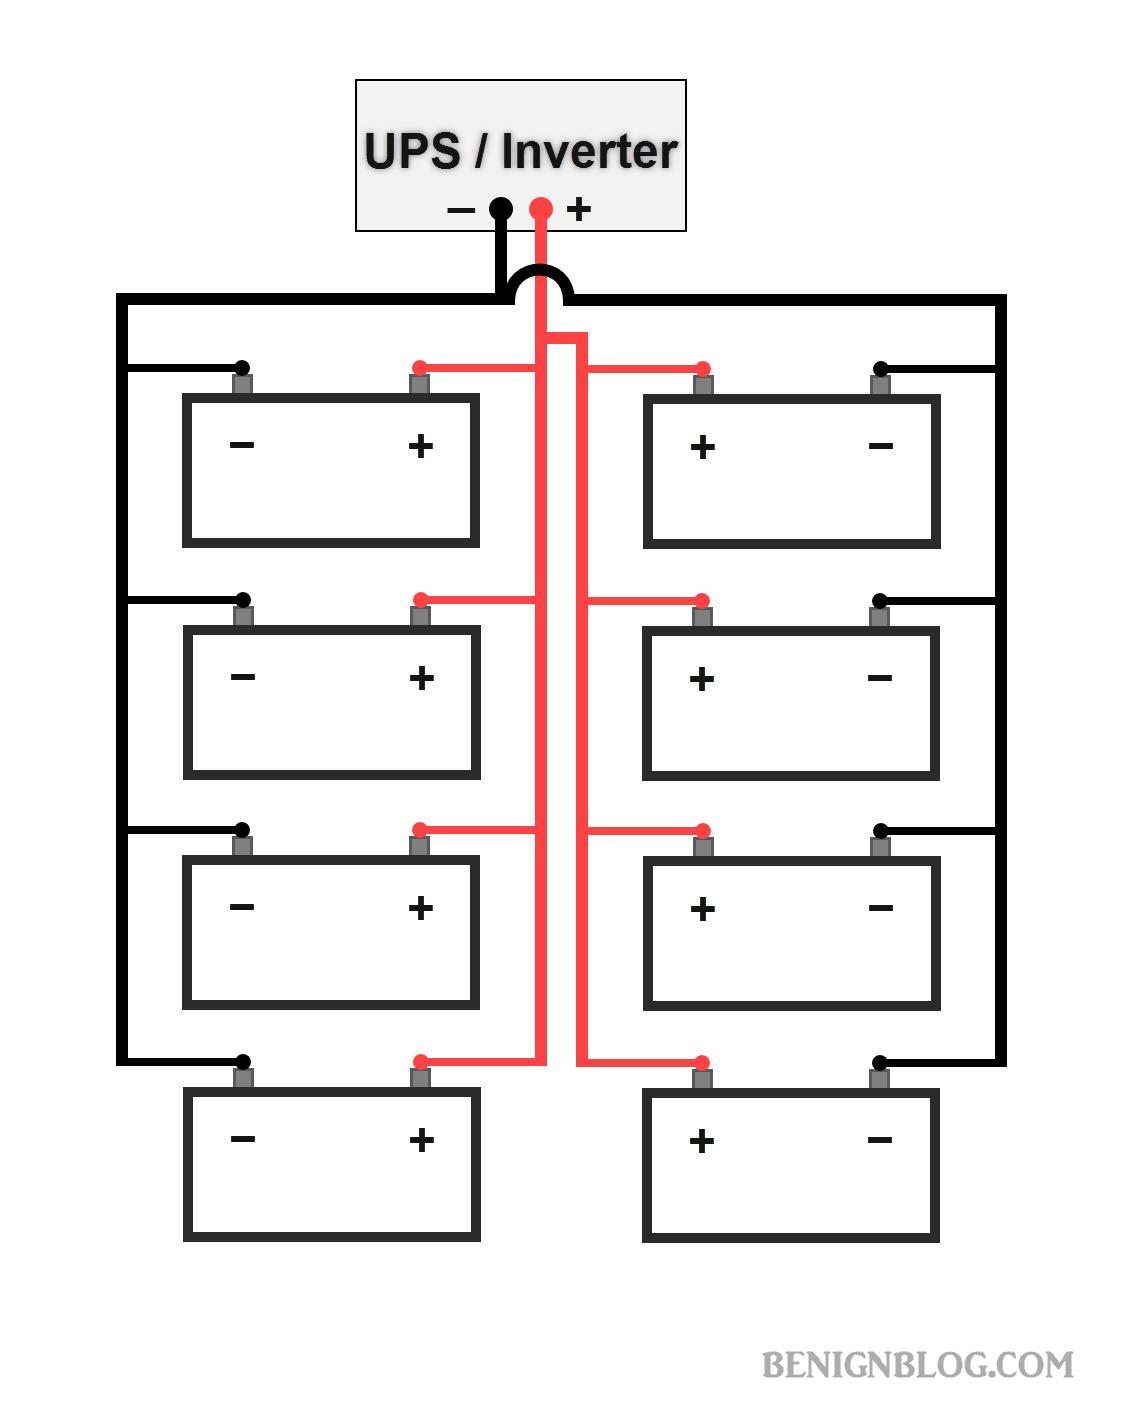 Series Parallel Wiring Diagram Schematic Electronic Stratocaster Pdf Along With Suhr Hss How To Connect Batteries In Power Inverter Or Ups Rhbenignblog